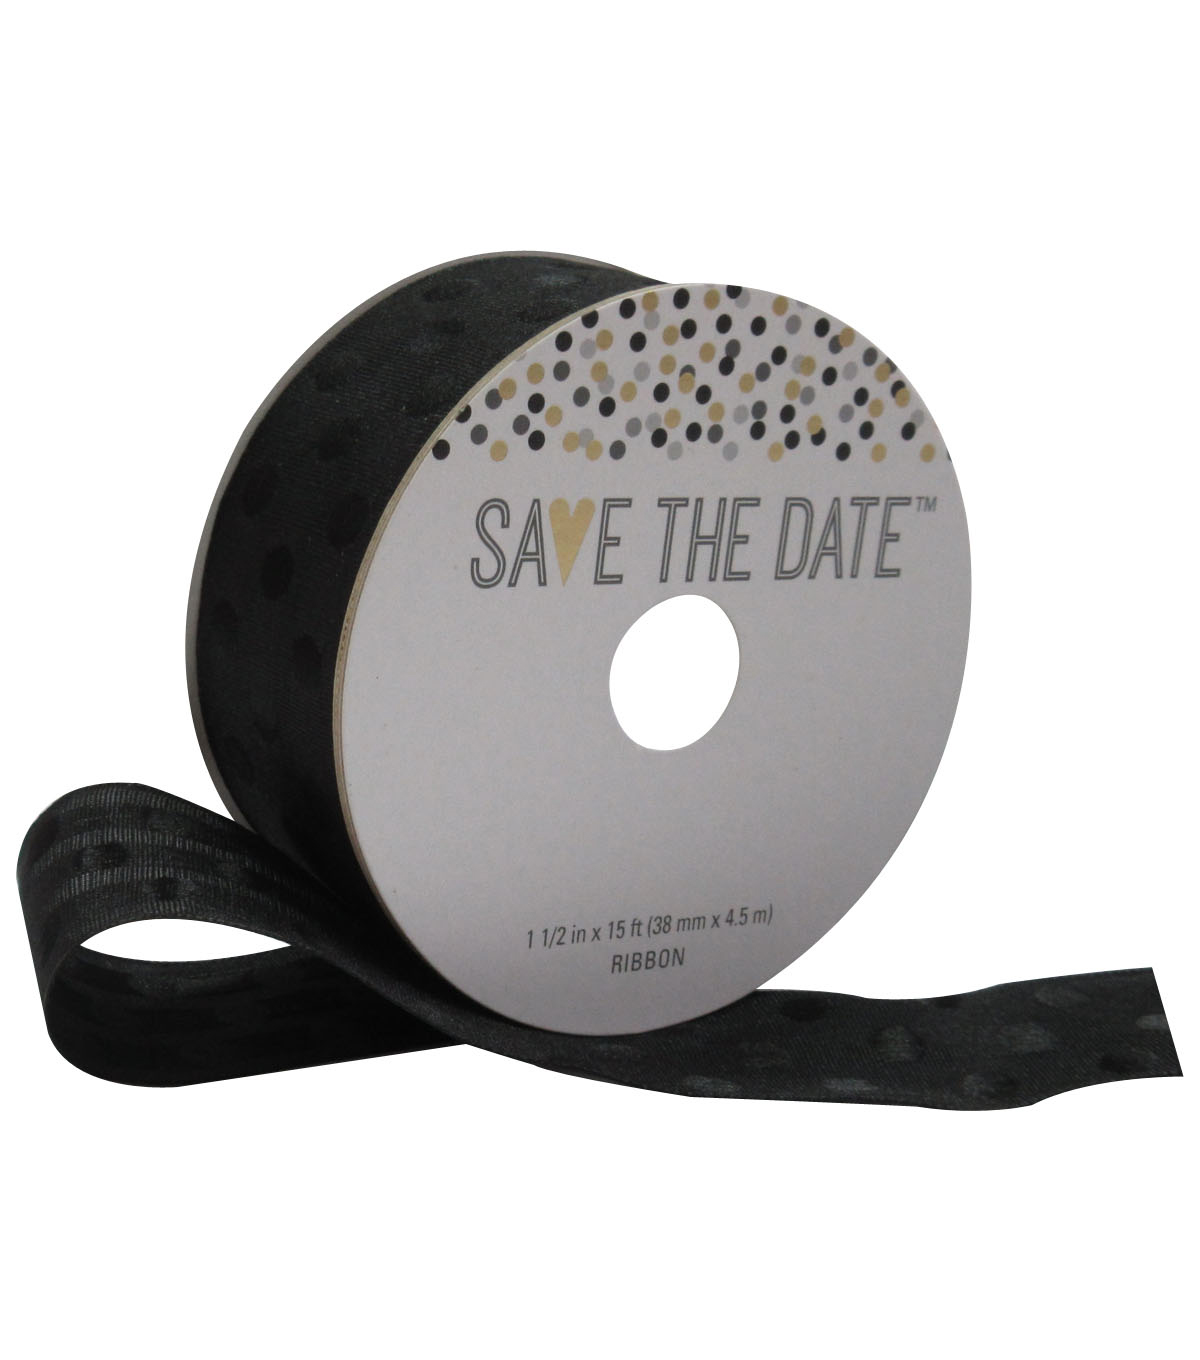 Save the Date 1.5\u0027\u0027 X 15\u0027 Ribbon Black Polka Dot on Black